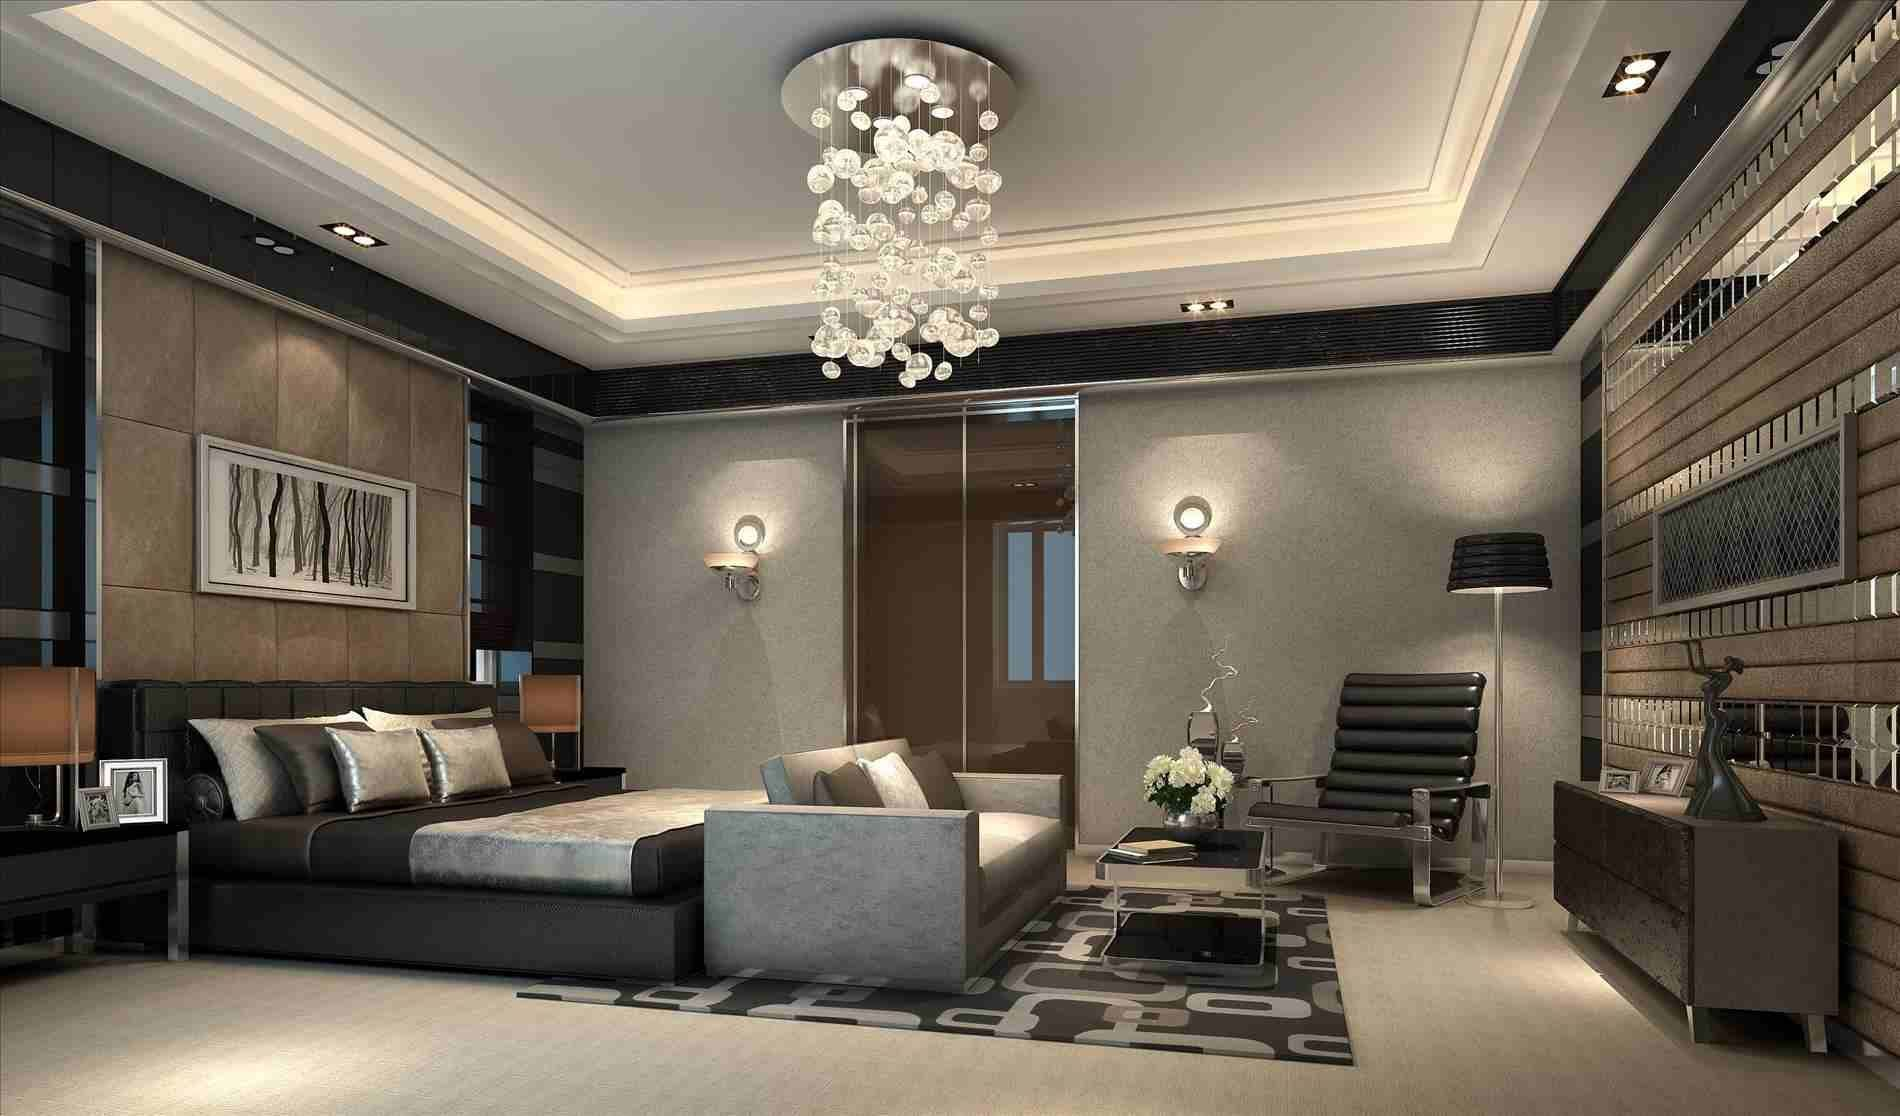 Big Bedrooms Design  Bedroom Luxury Elegant Design Ideas With